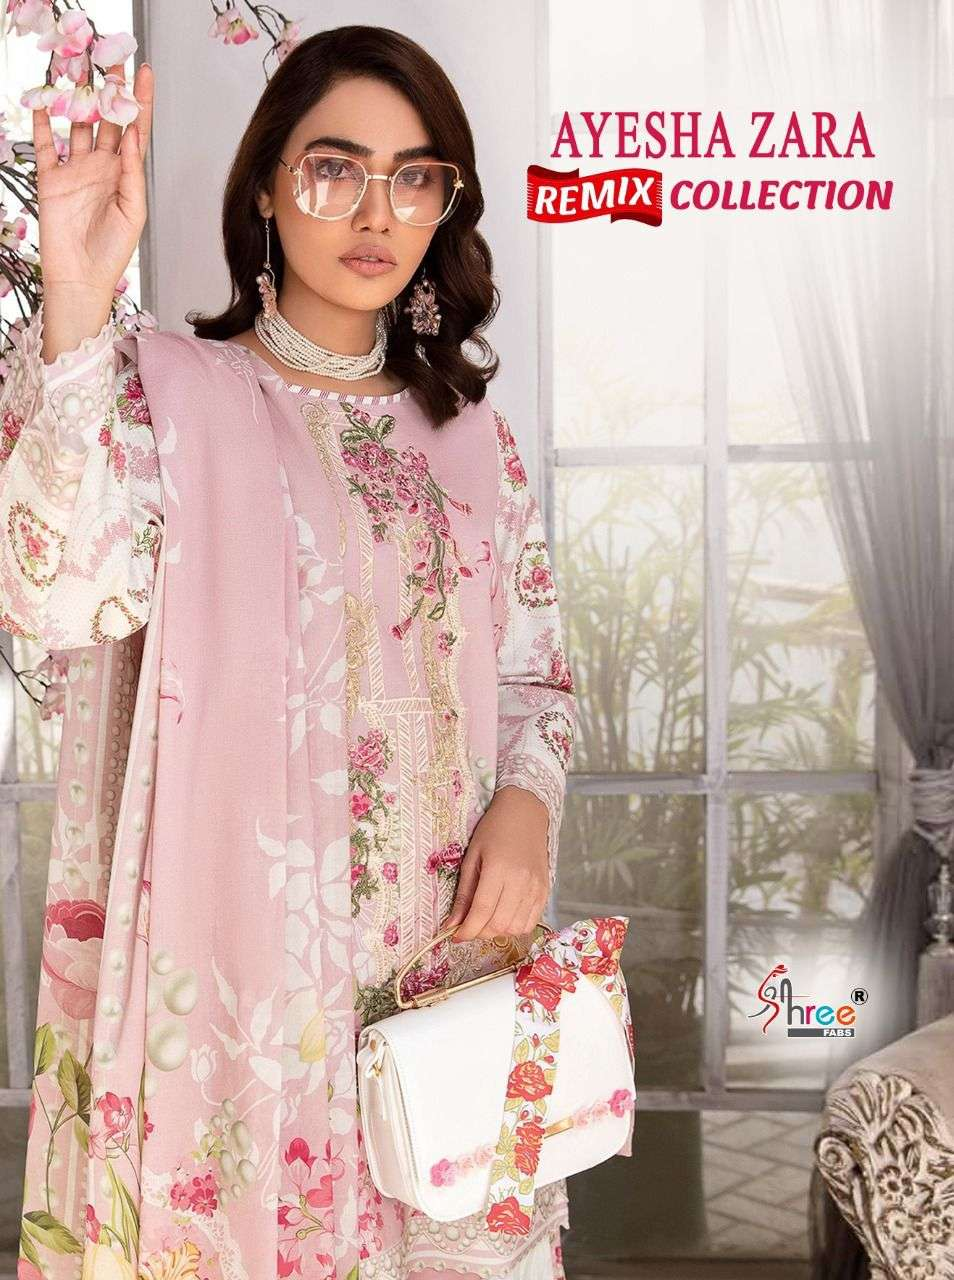 SHREE FAB AYESHA ZARA REMIX COLLECTION DESIGNER PURE COTTON PRINT WITH EMBROIDERY PATCH WORK SUITS WHOLESALE